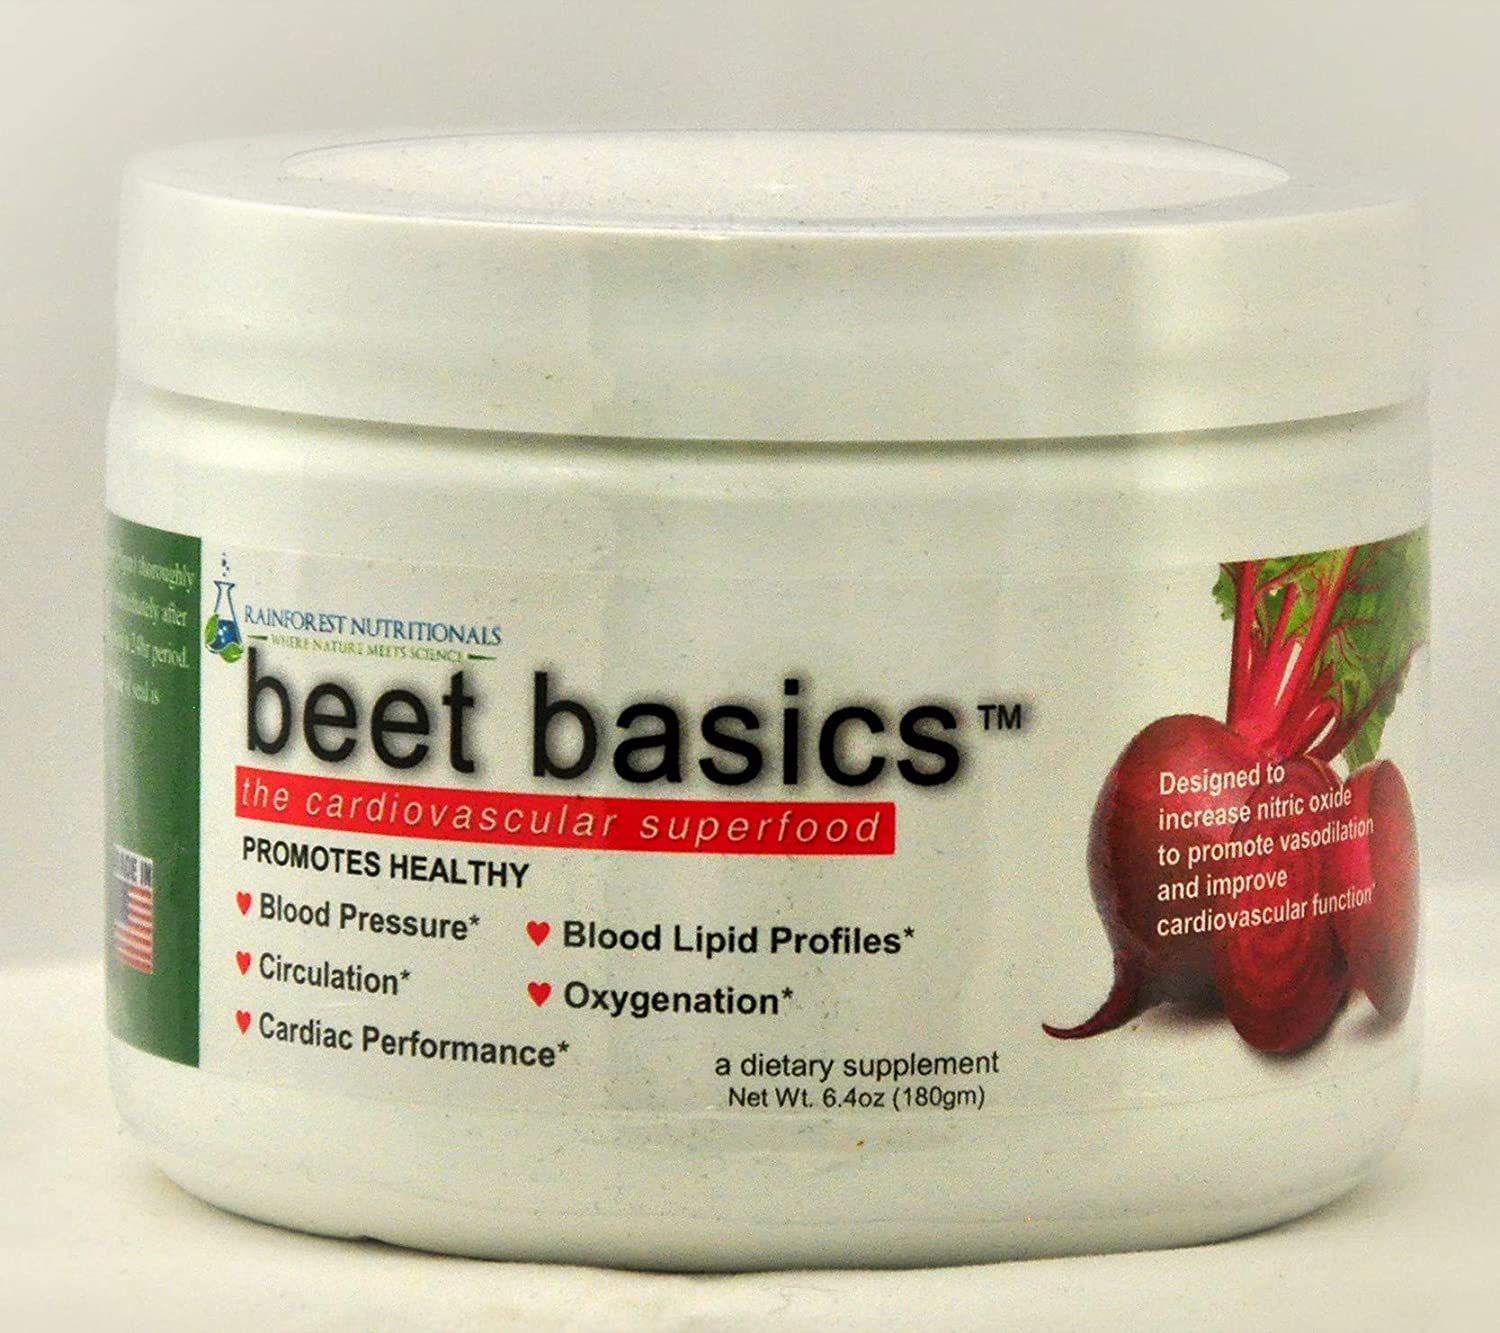 Beet Basics-The True Cardiovascular Super-Food – Nitric Oxide Booster Plus Cardiovascular and Endurance Support Supplements and Super Antioxidants